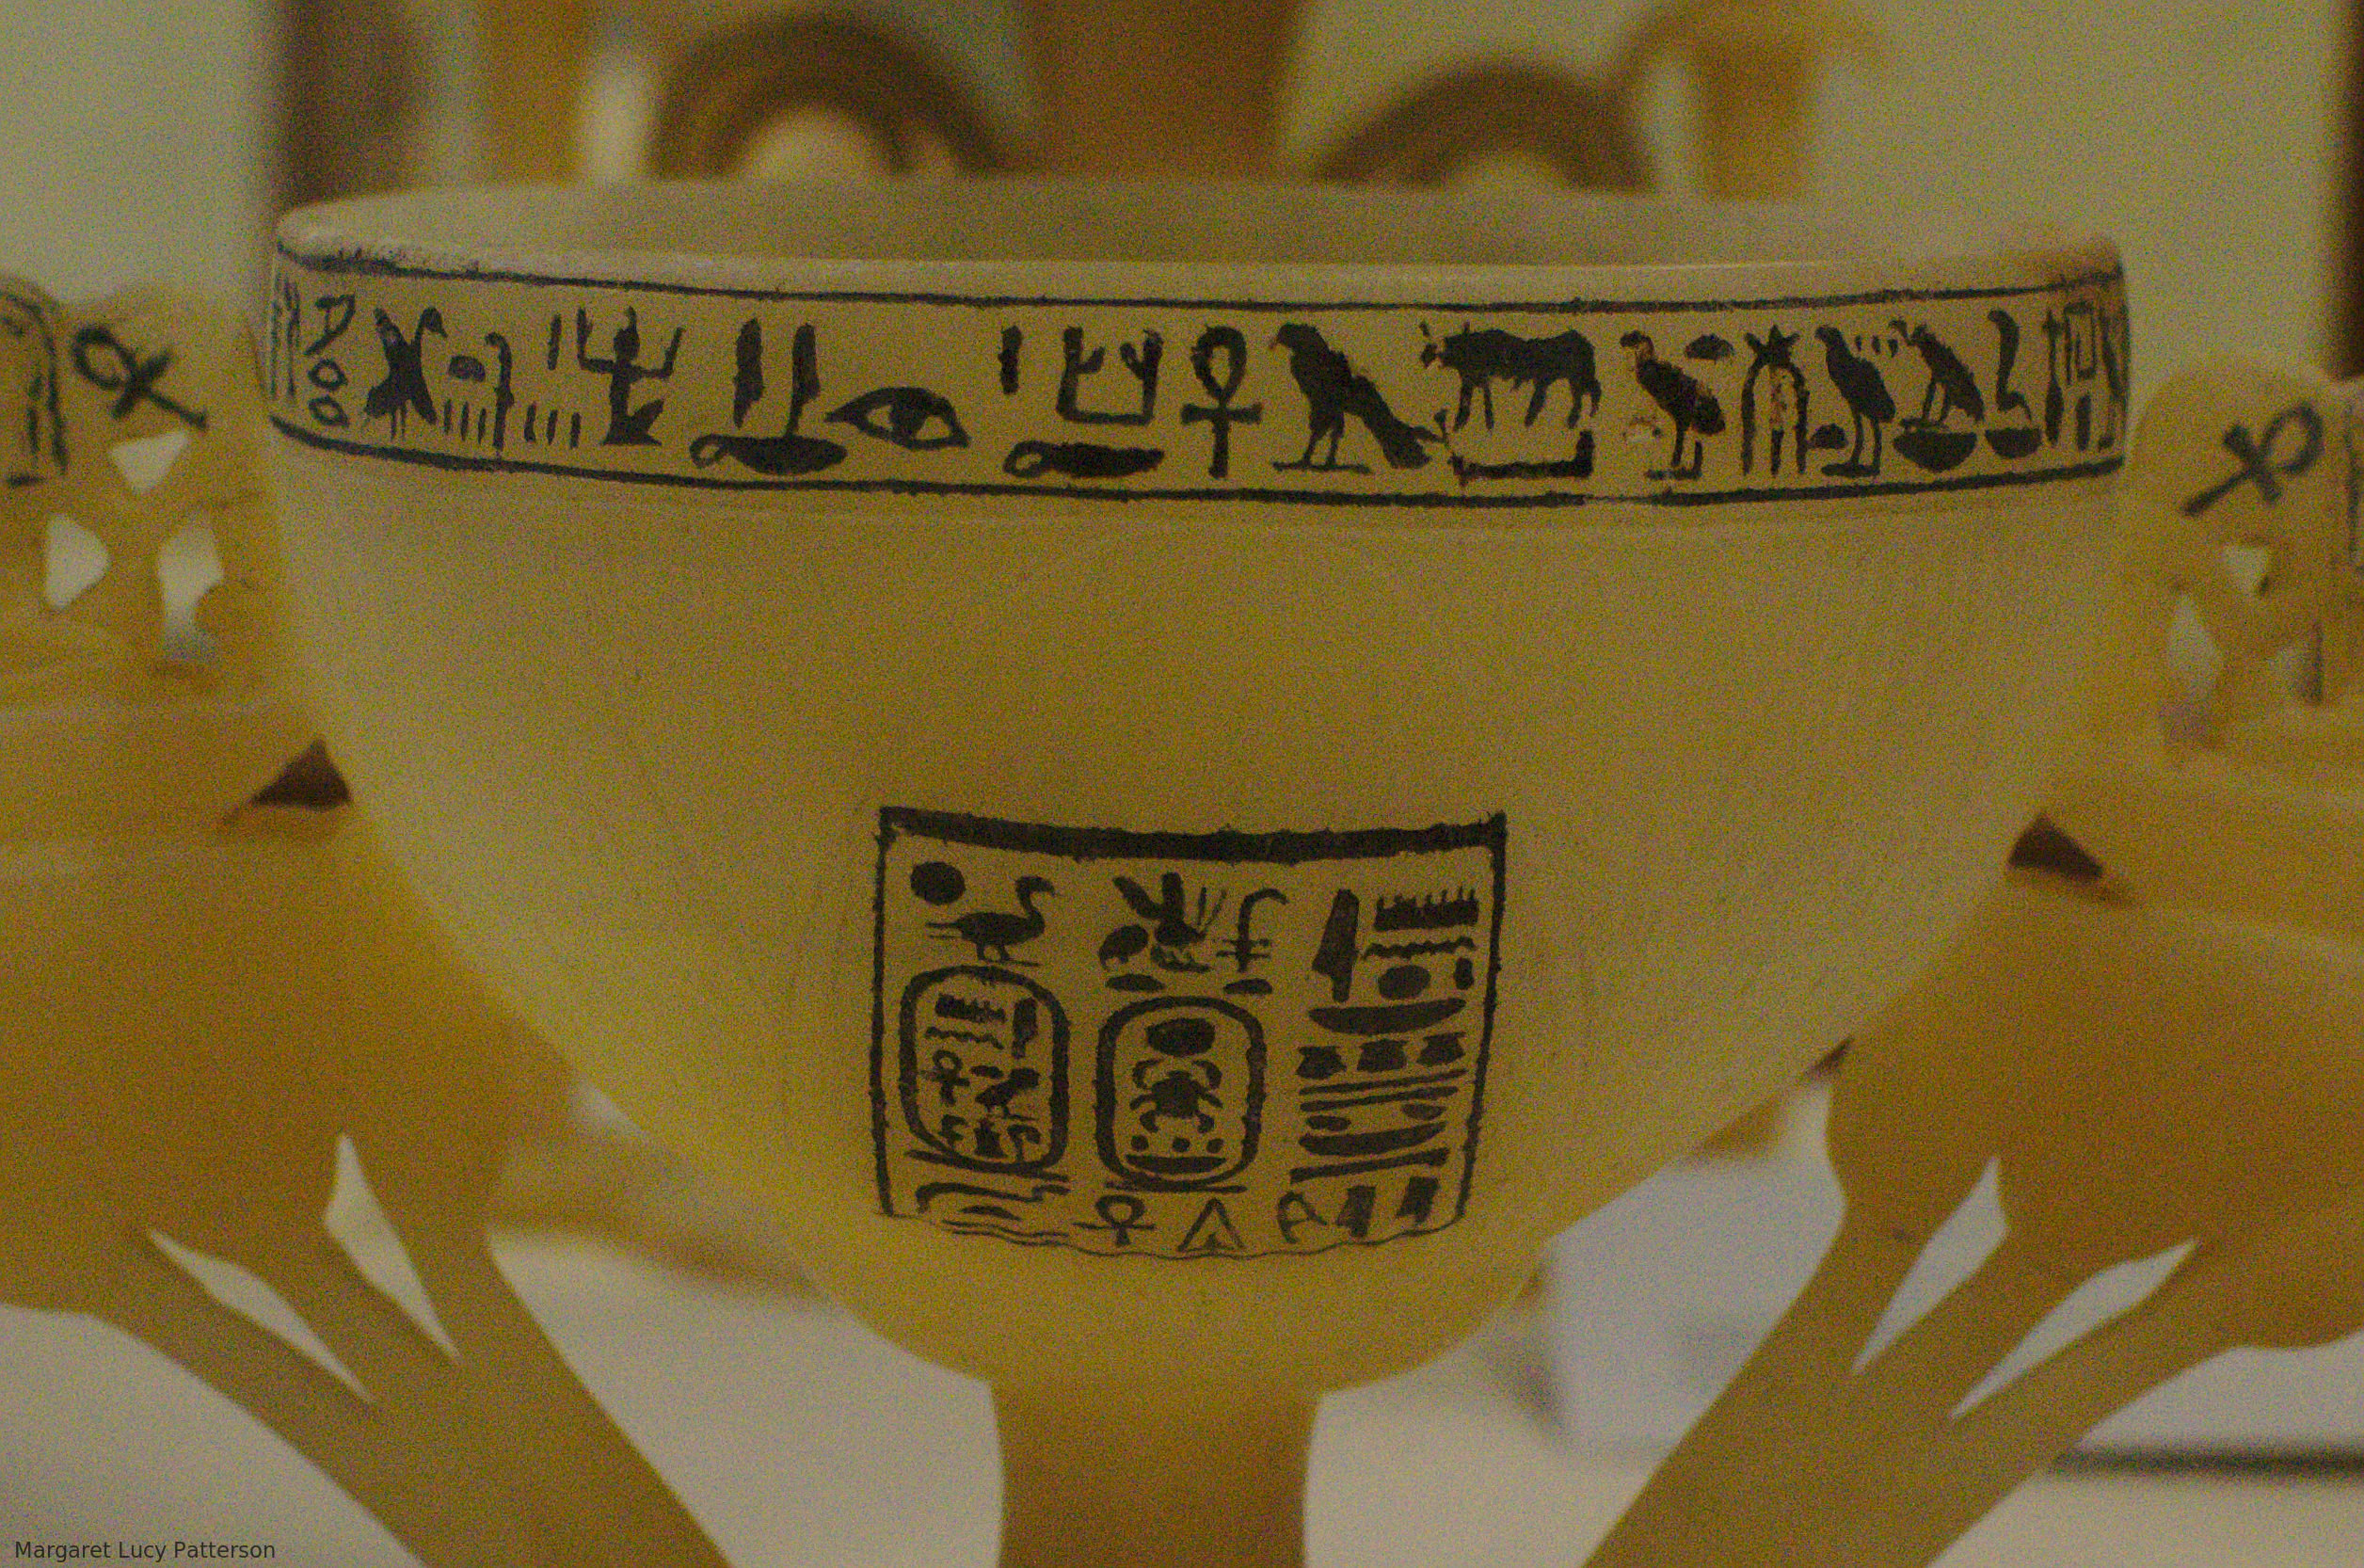 An alabaster vase decorated with hieroglyphs, including the Son of Re and Dual King names of Tutankhamun.